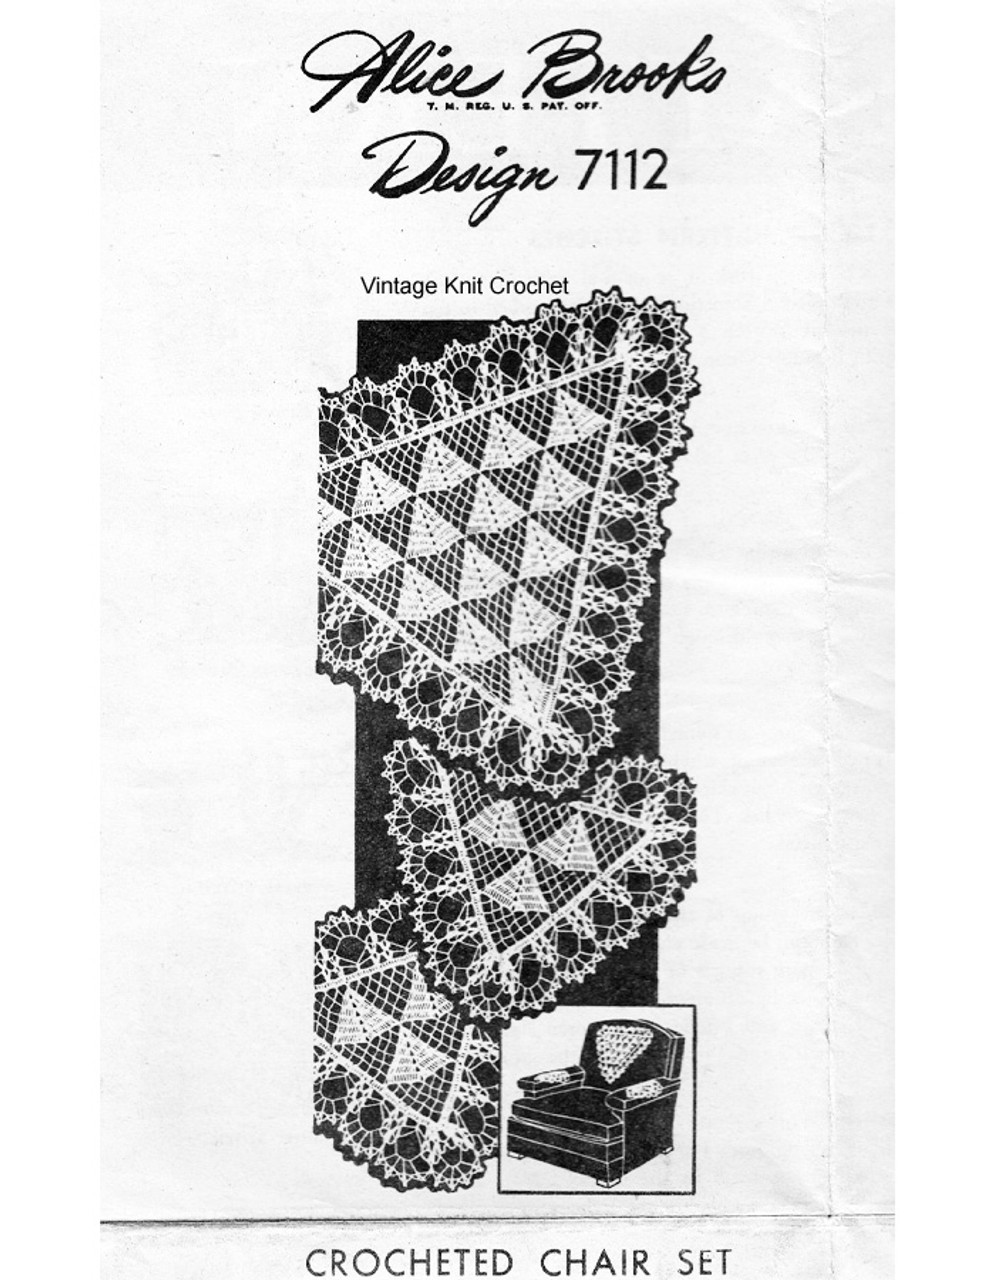 Triangle Crochet Chair Set Pattern, Mail Order 7112